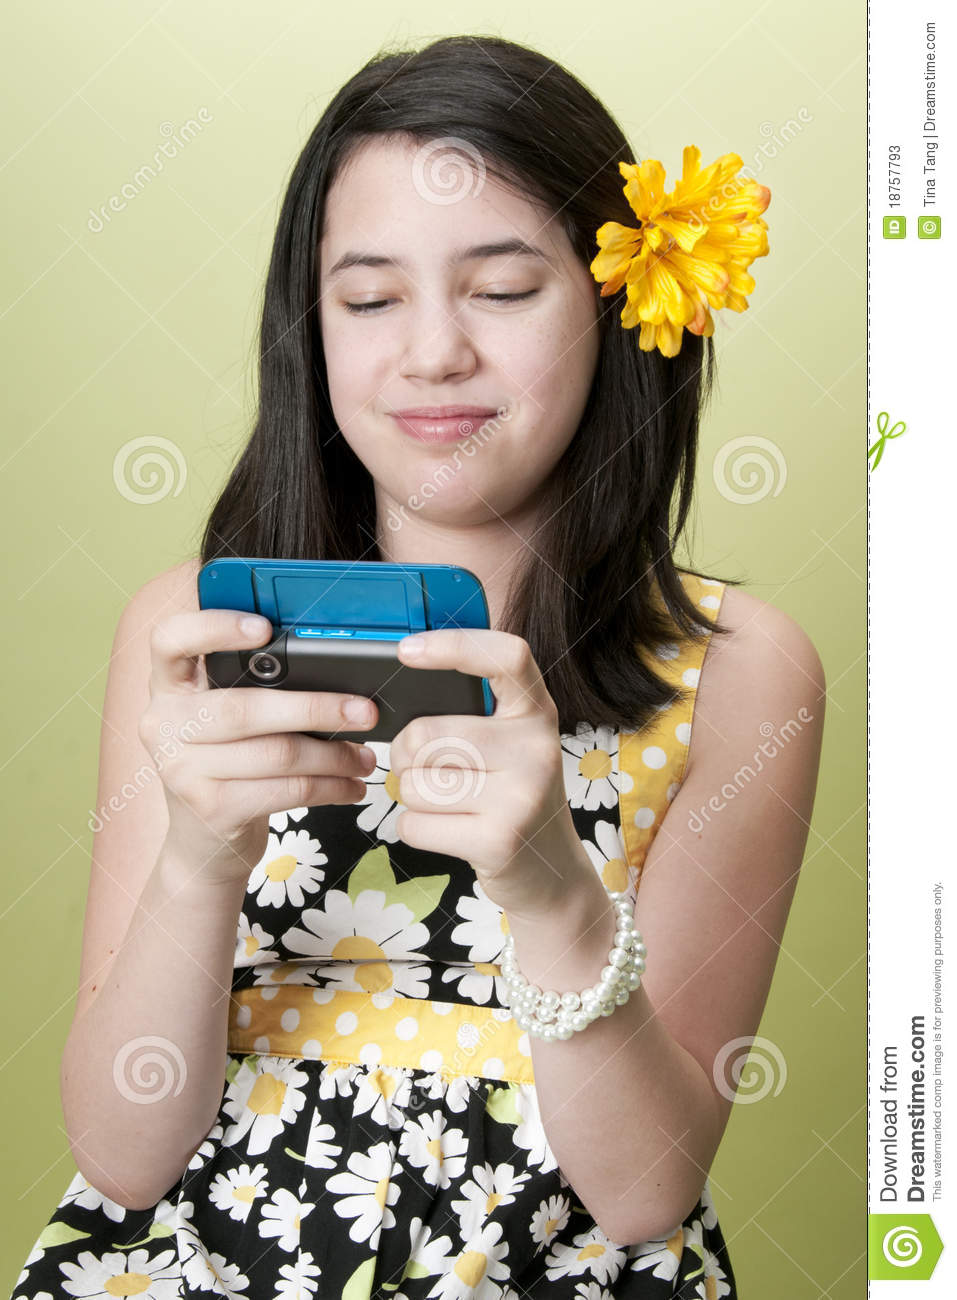 Preteen girl texting on cell phone.